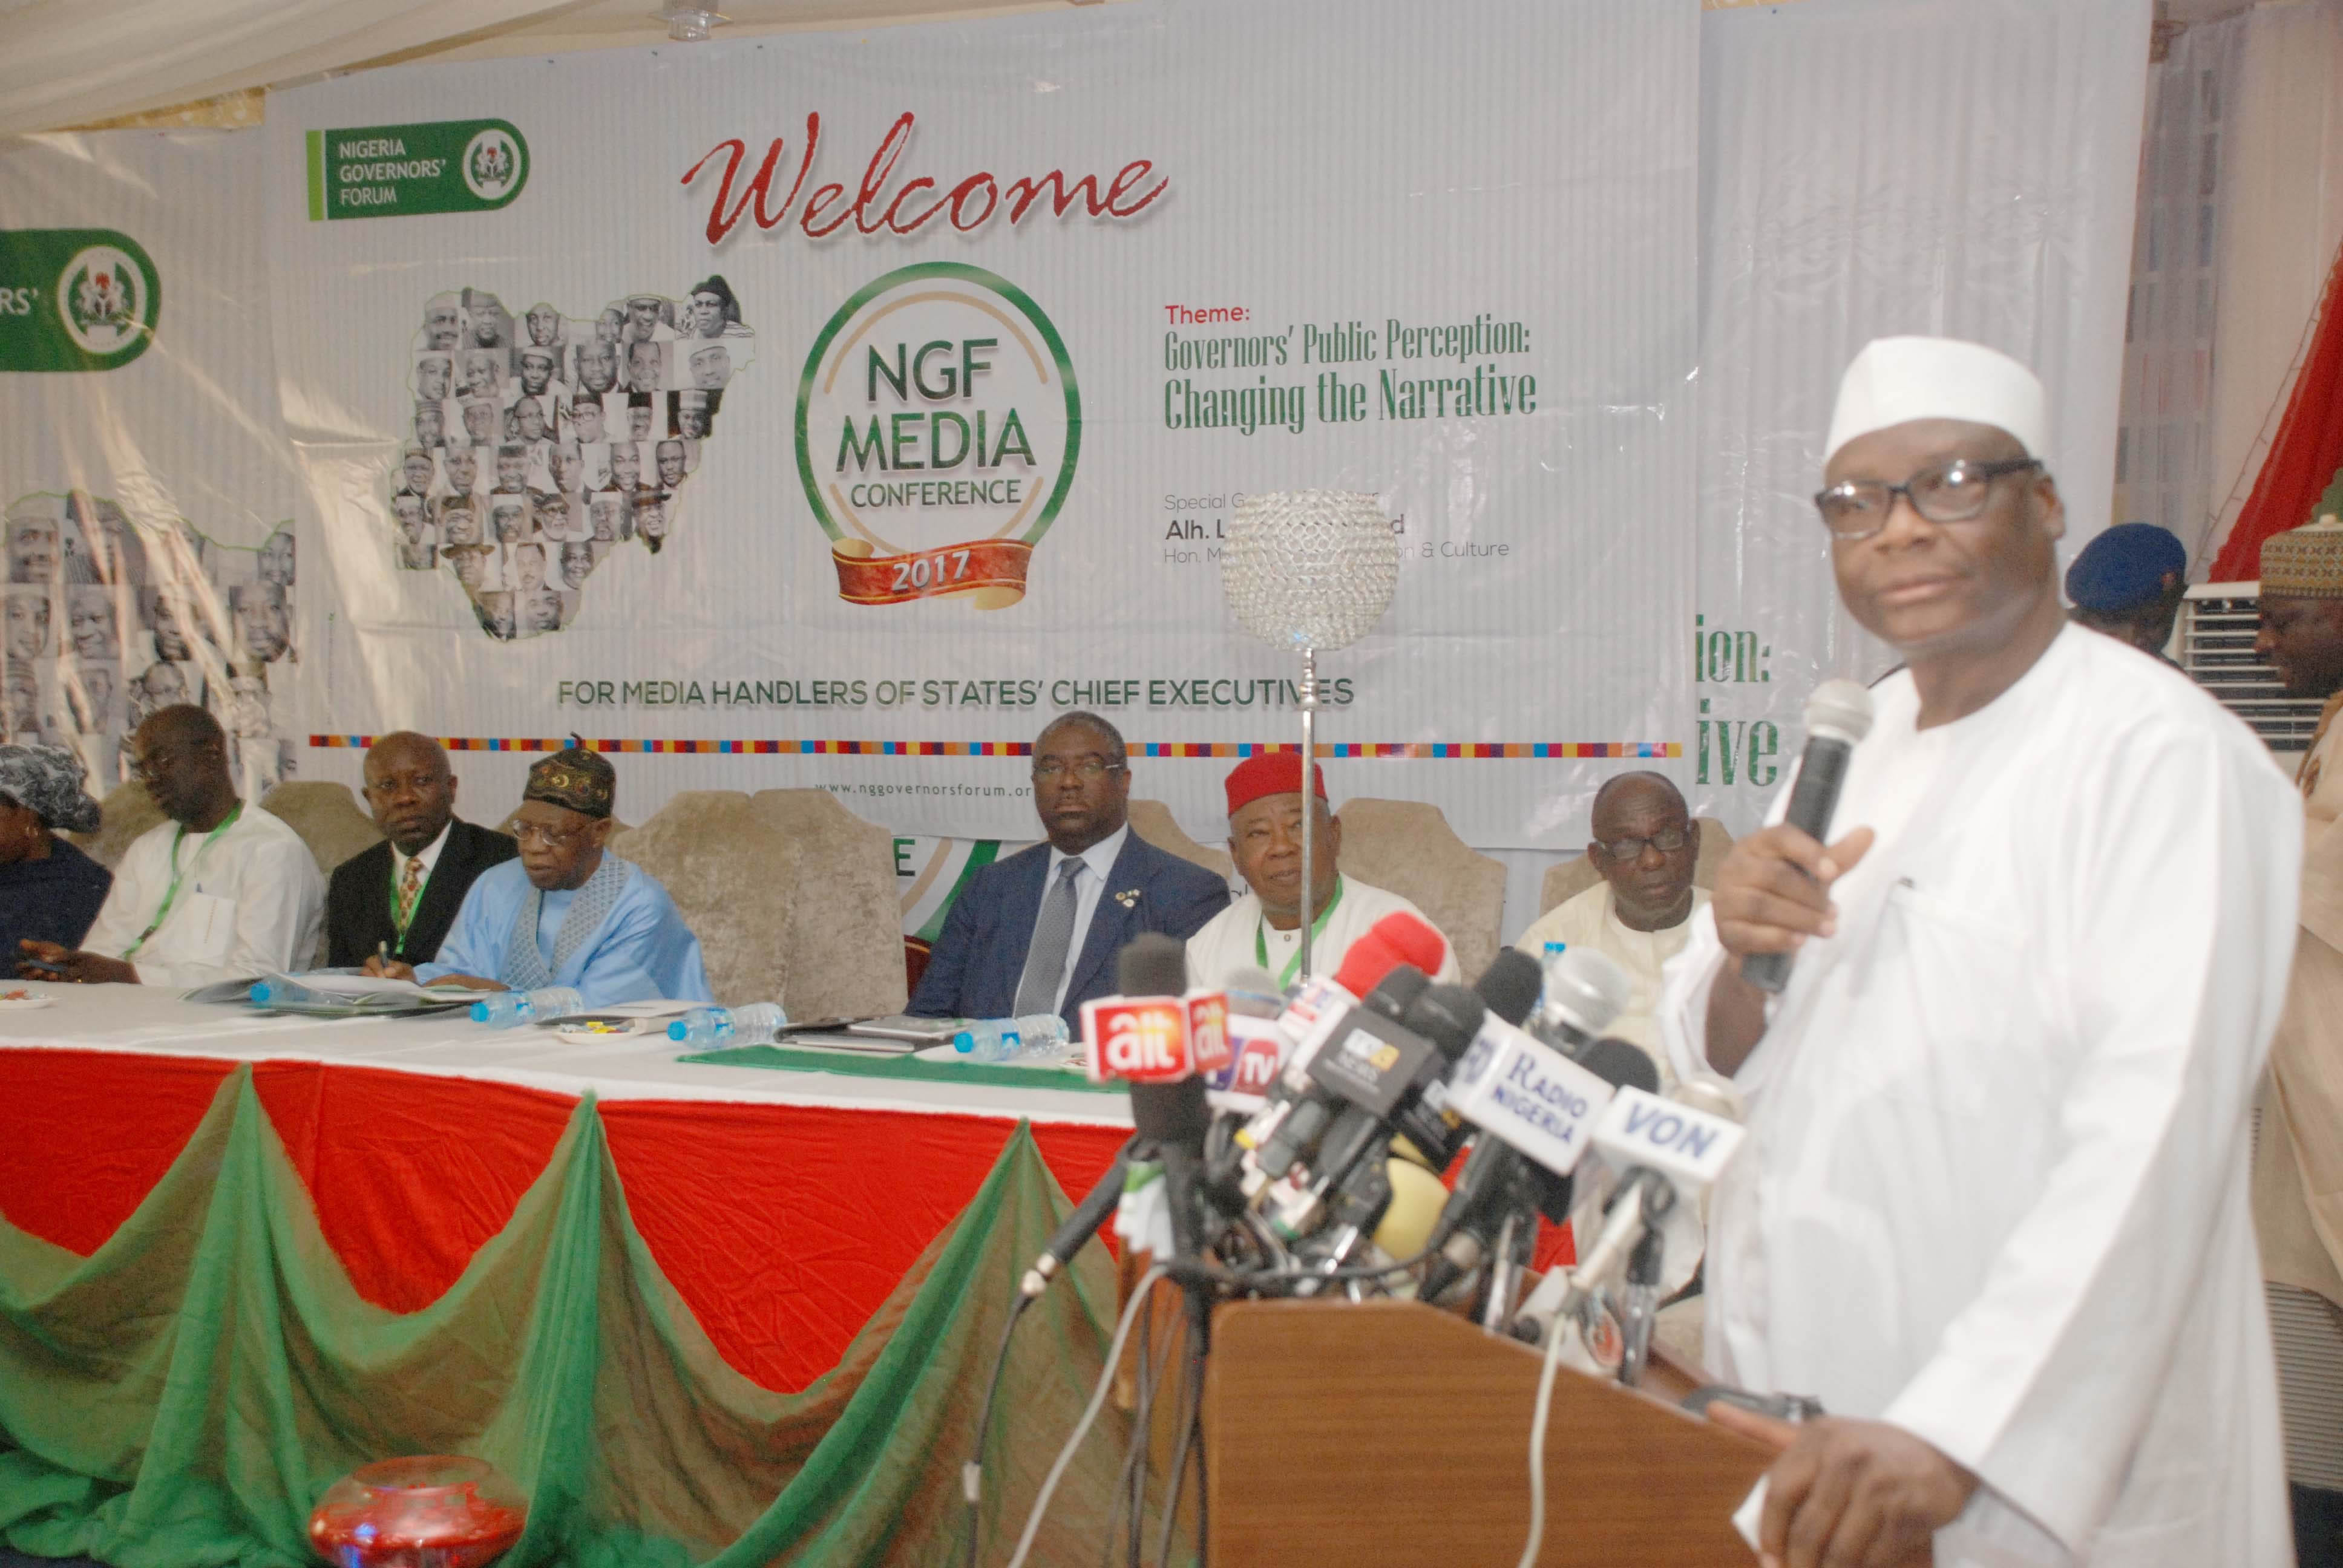 The NGF Media Conference 2017